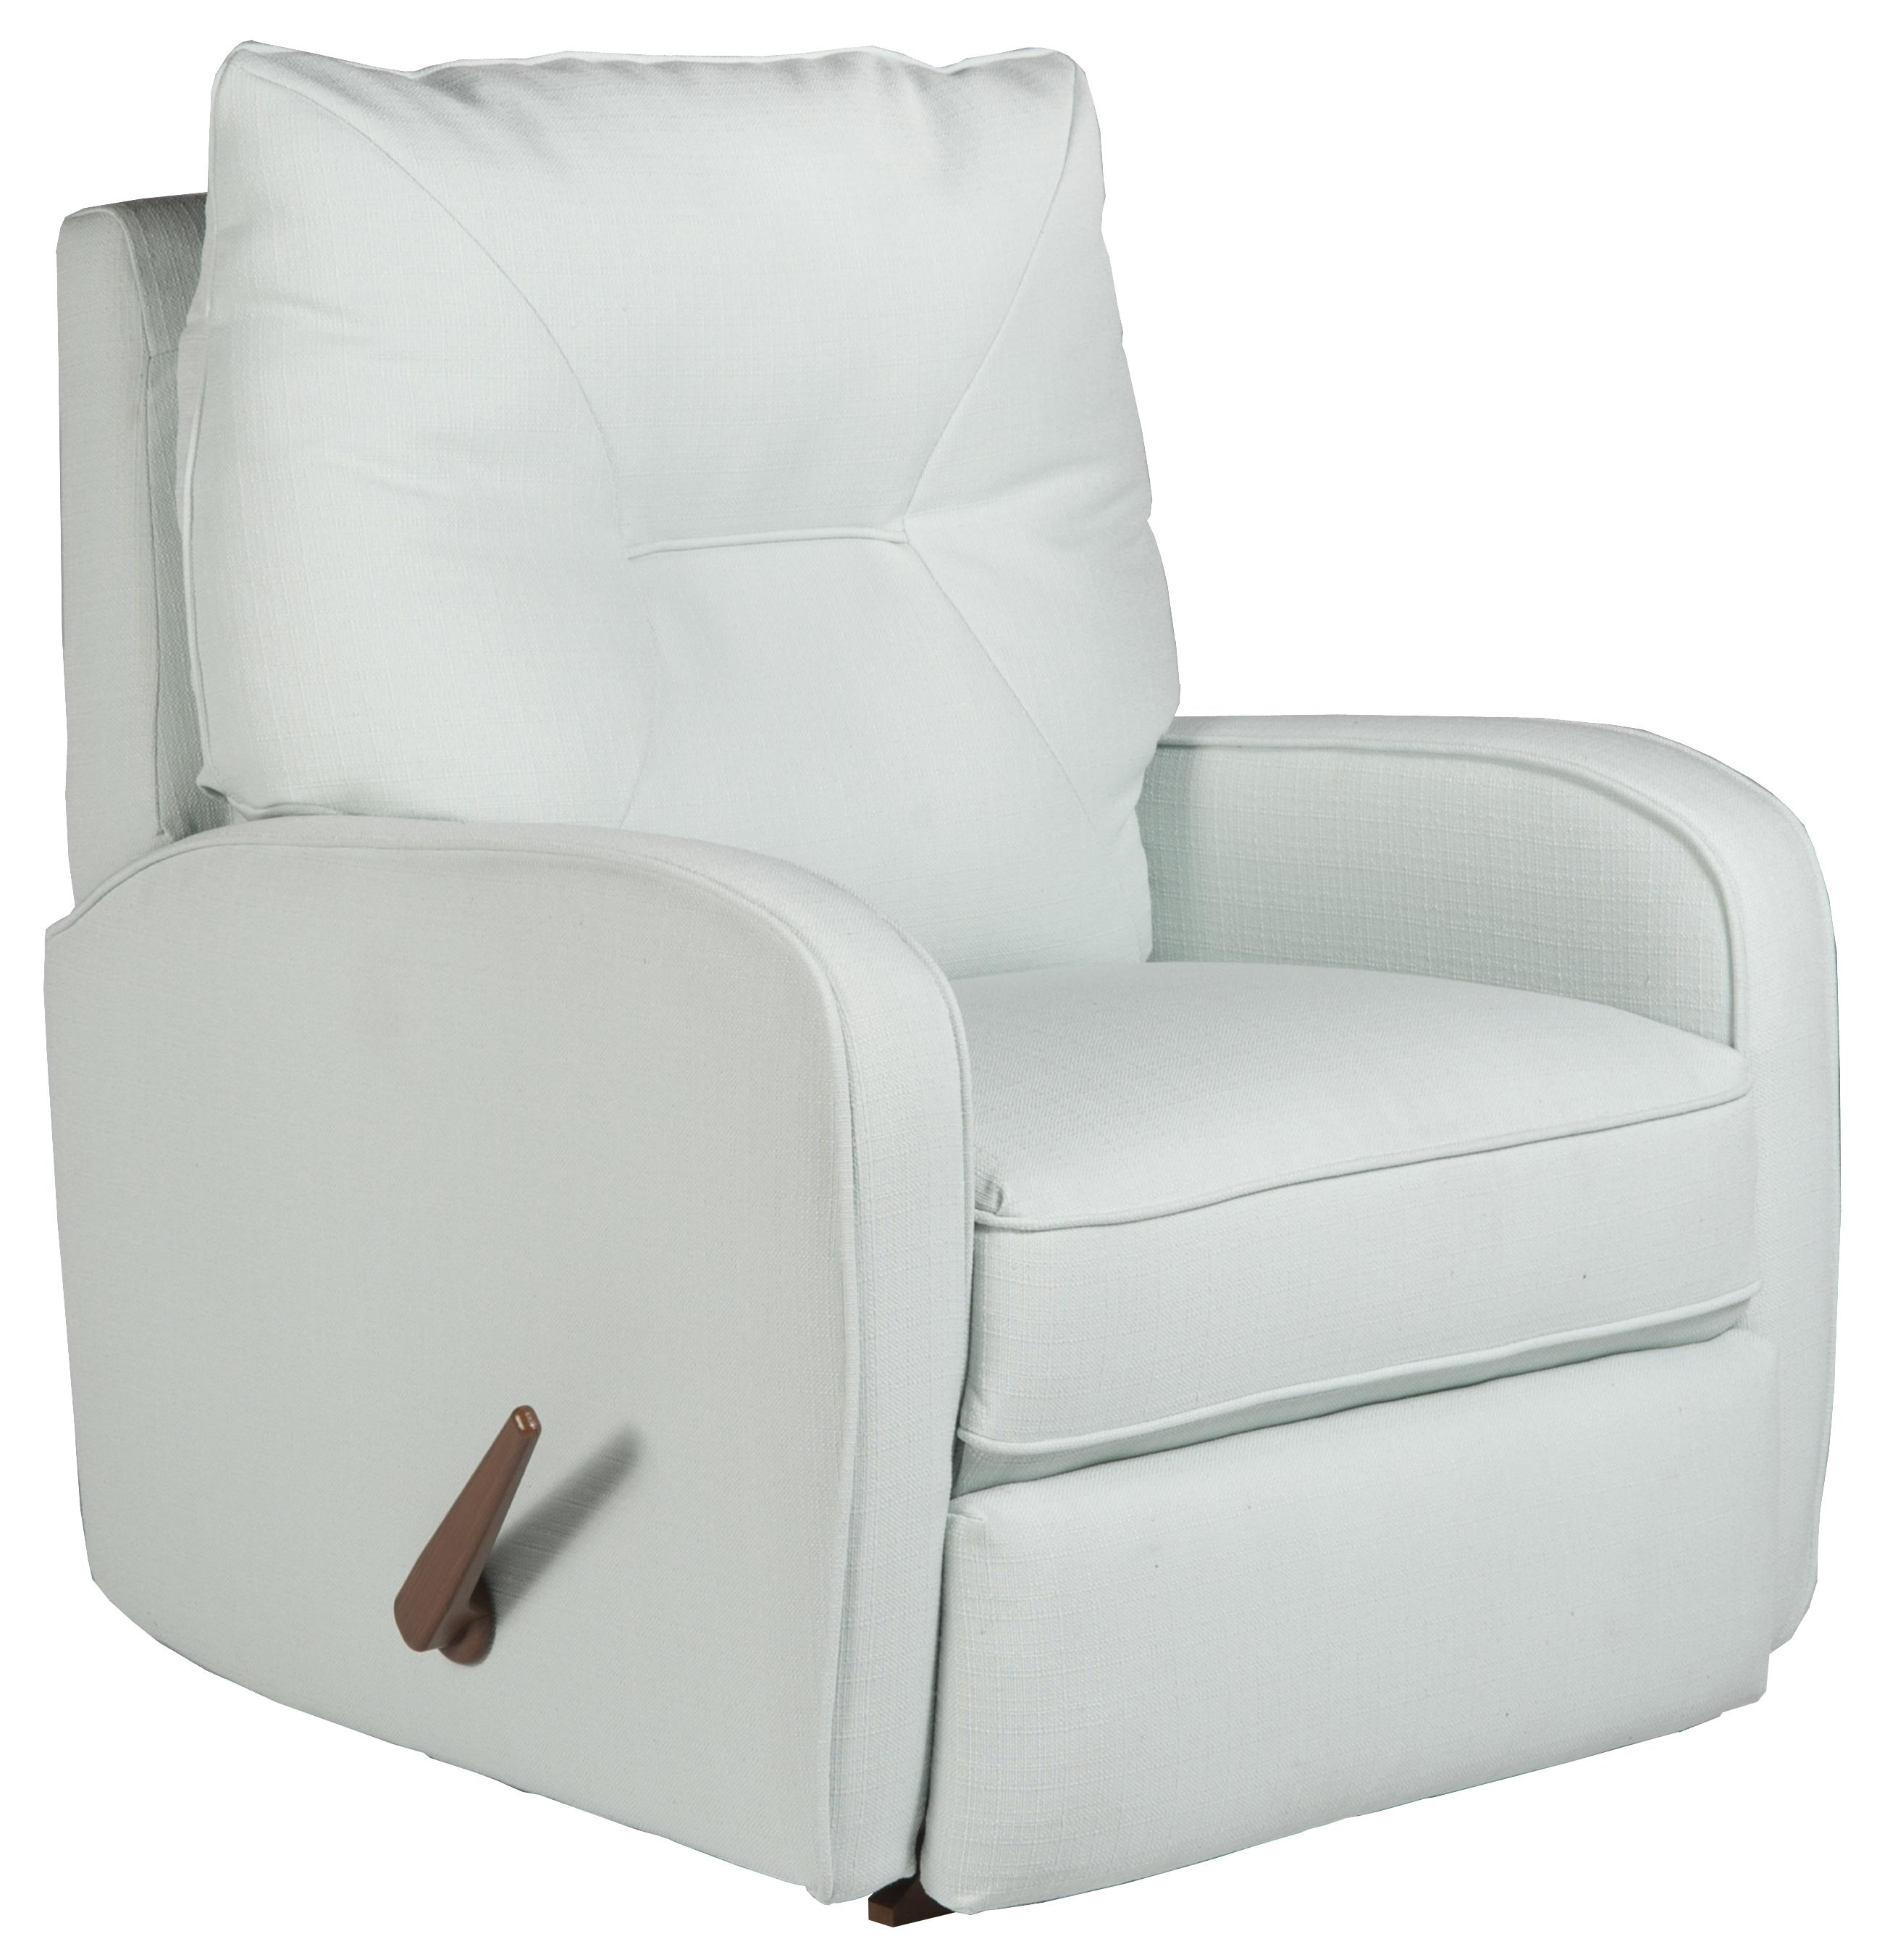 Contemporary Ingall Power Lift Recliner in Sleek Modern Style  sc 1 st  Wolf Furniture & Contemporary Ingall Power Lift Recliner in Sleek Modern Style by ... islam-shia.org